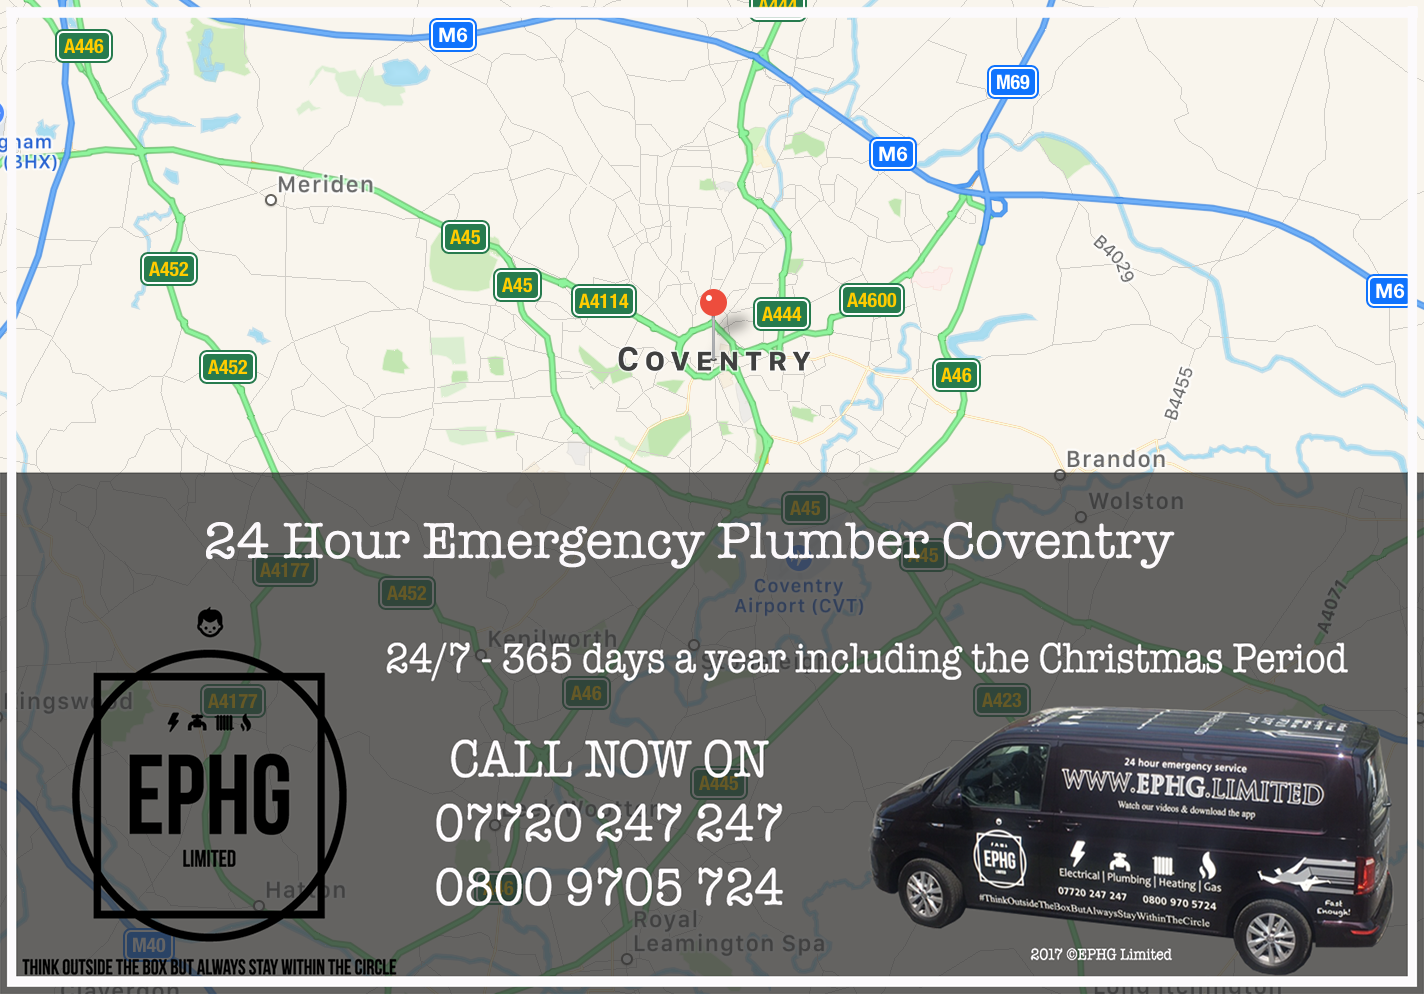 24 Hour Emergency Plumber Coventry